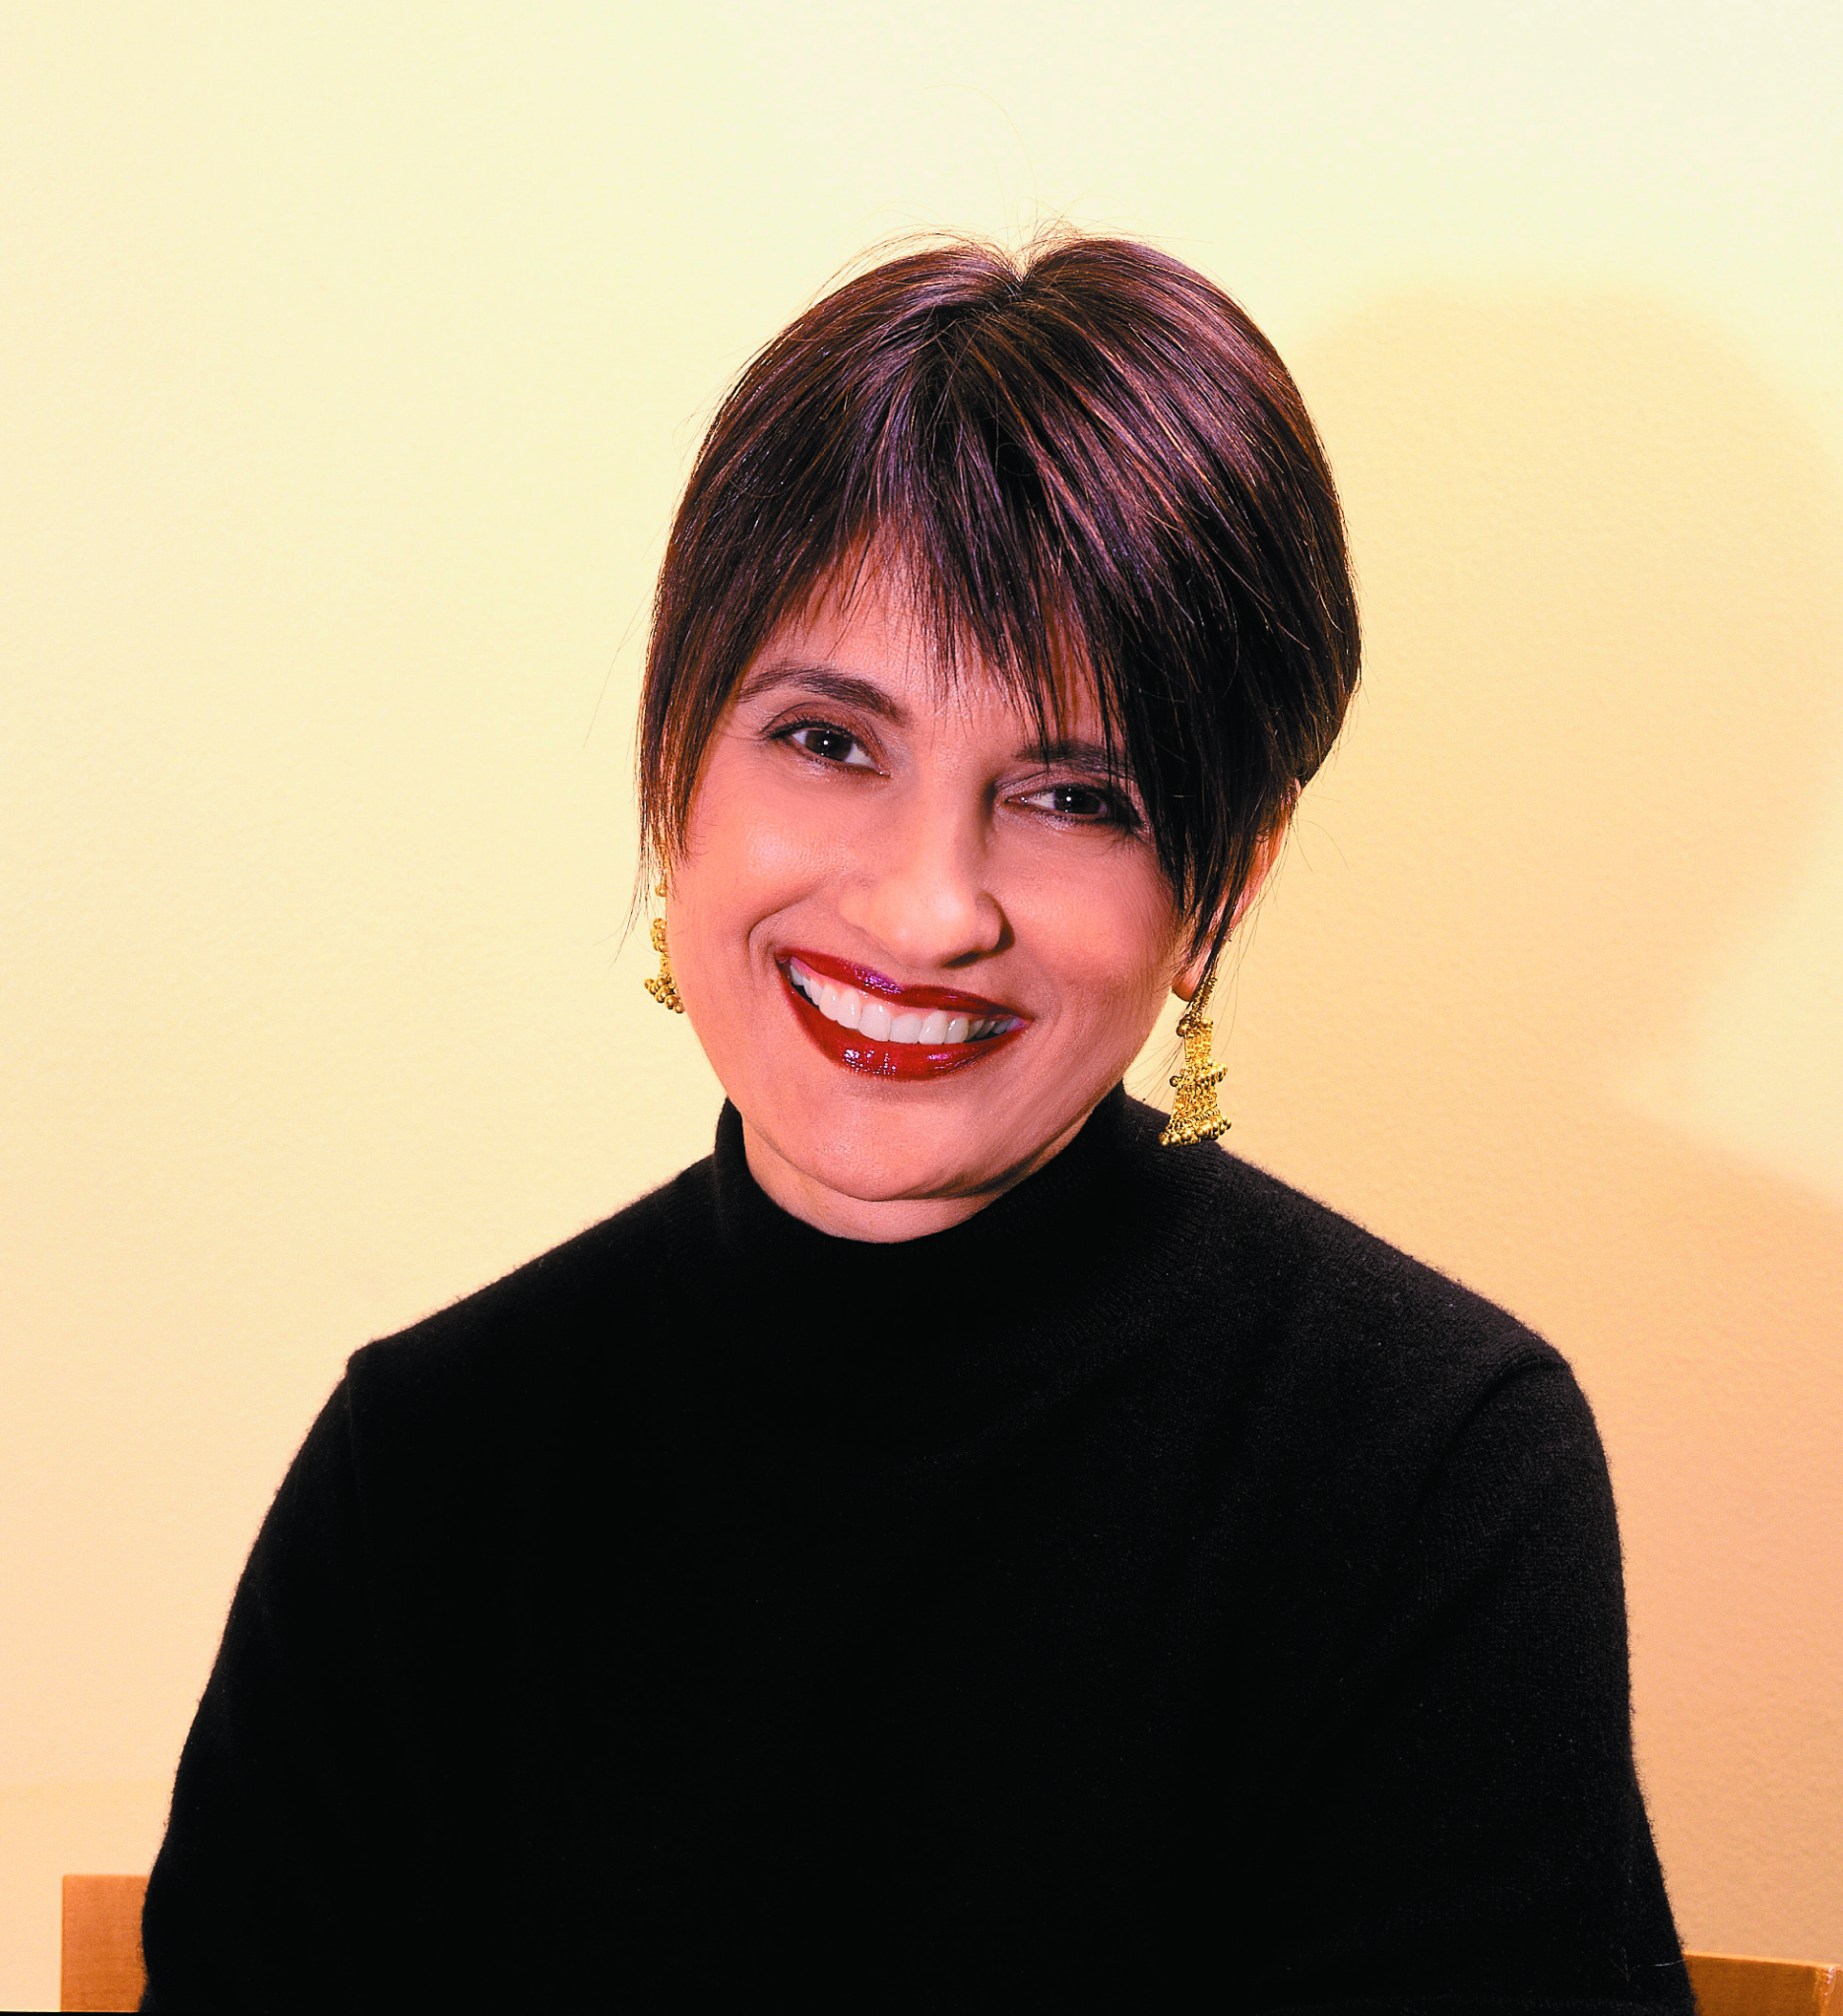 Logics International Spokesperson Gina Kahn